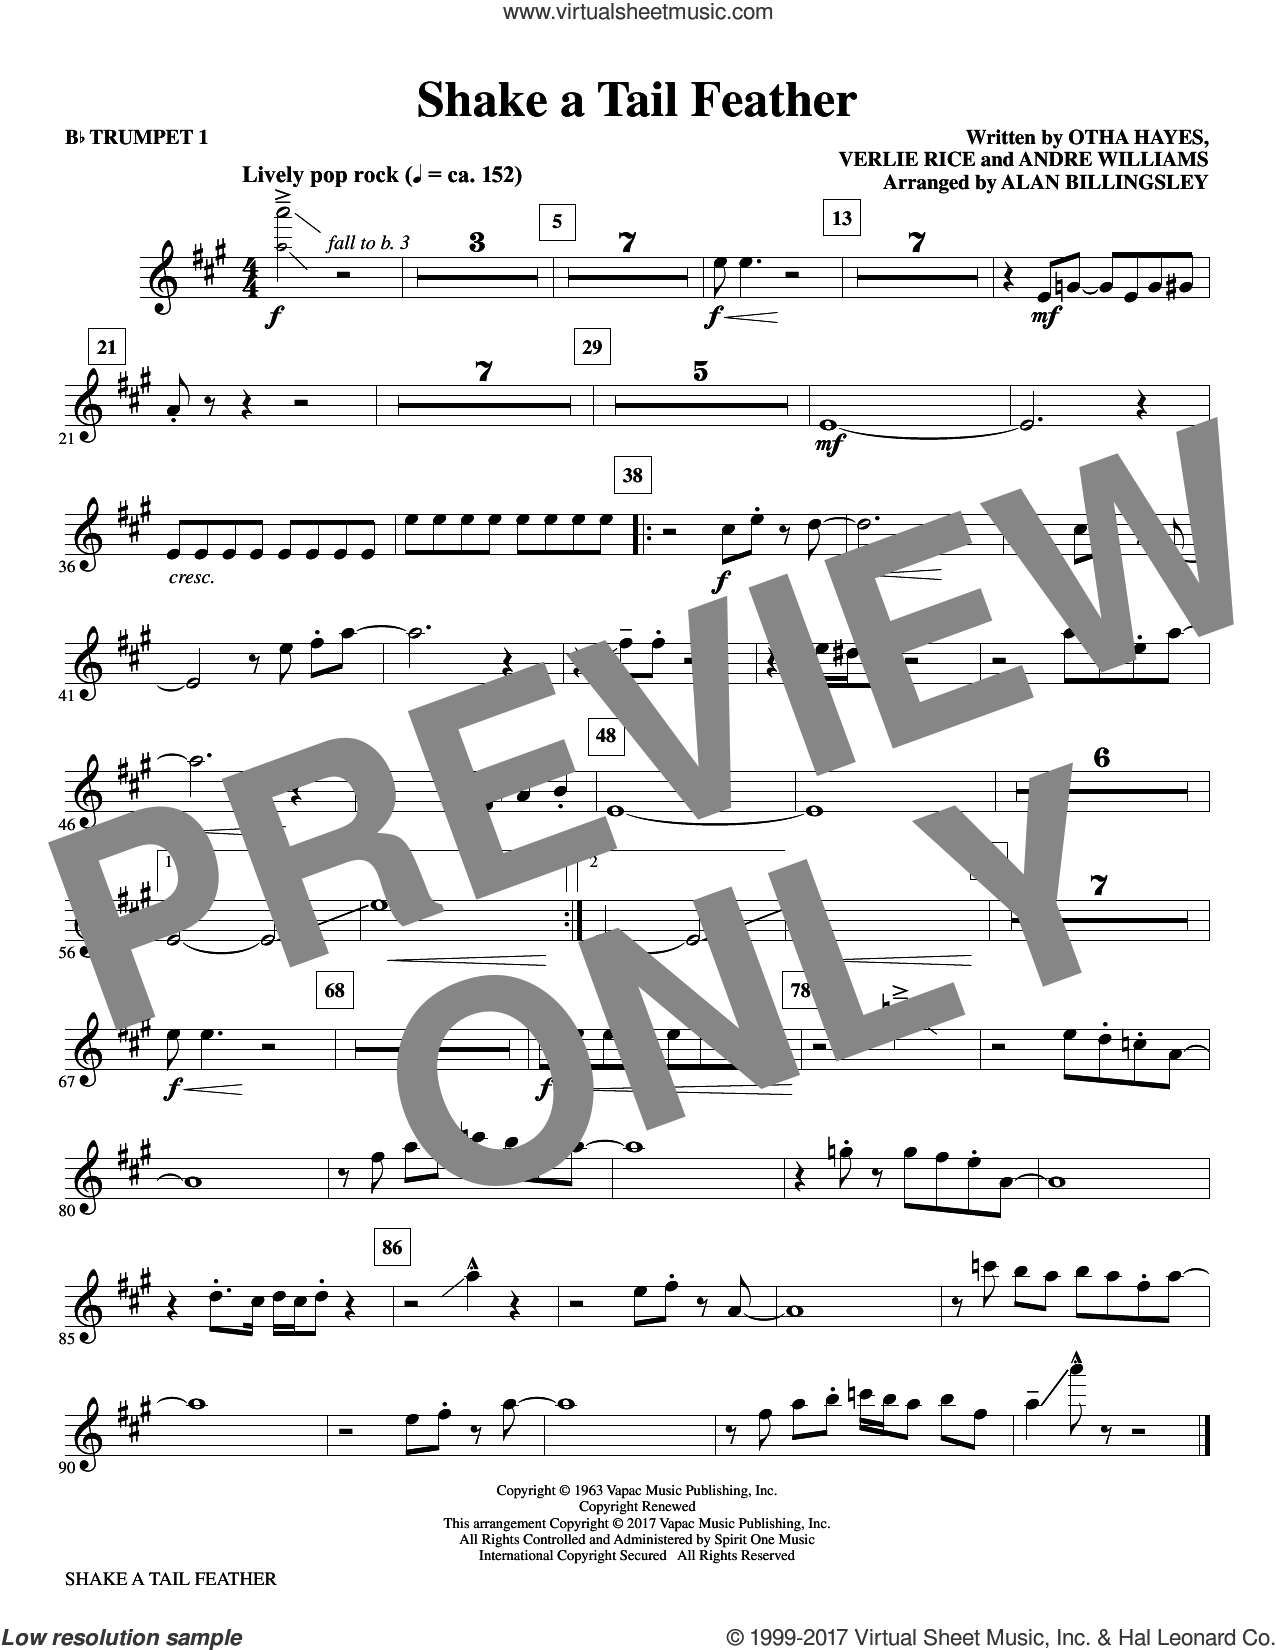 Shake a Tail Feather (complete set of parts) sheet music for orchestra/band by Alan Billingsley, Andre Williams, Otha M. Hayes and Verlie Rice, intermediate skill level